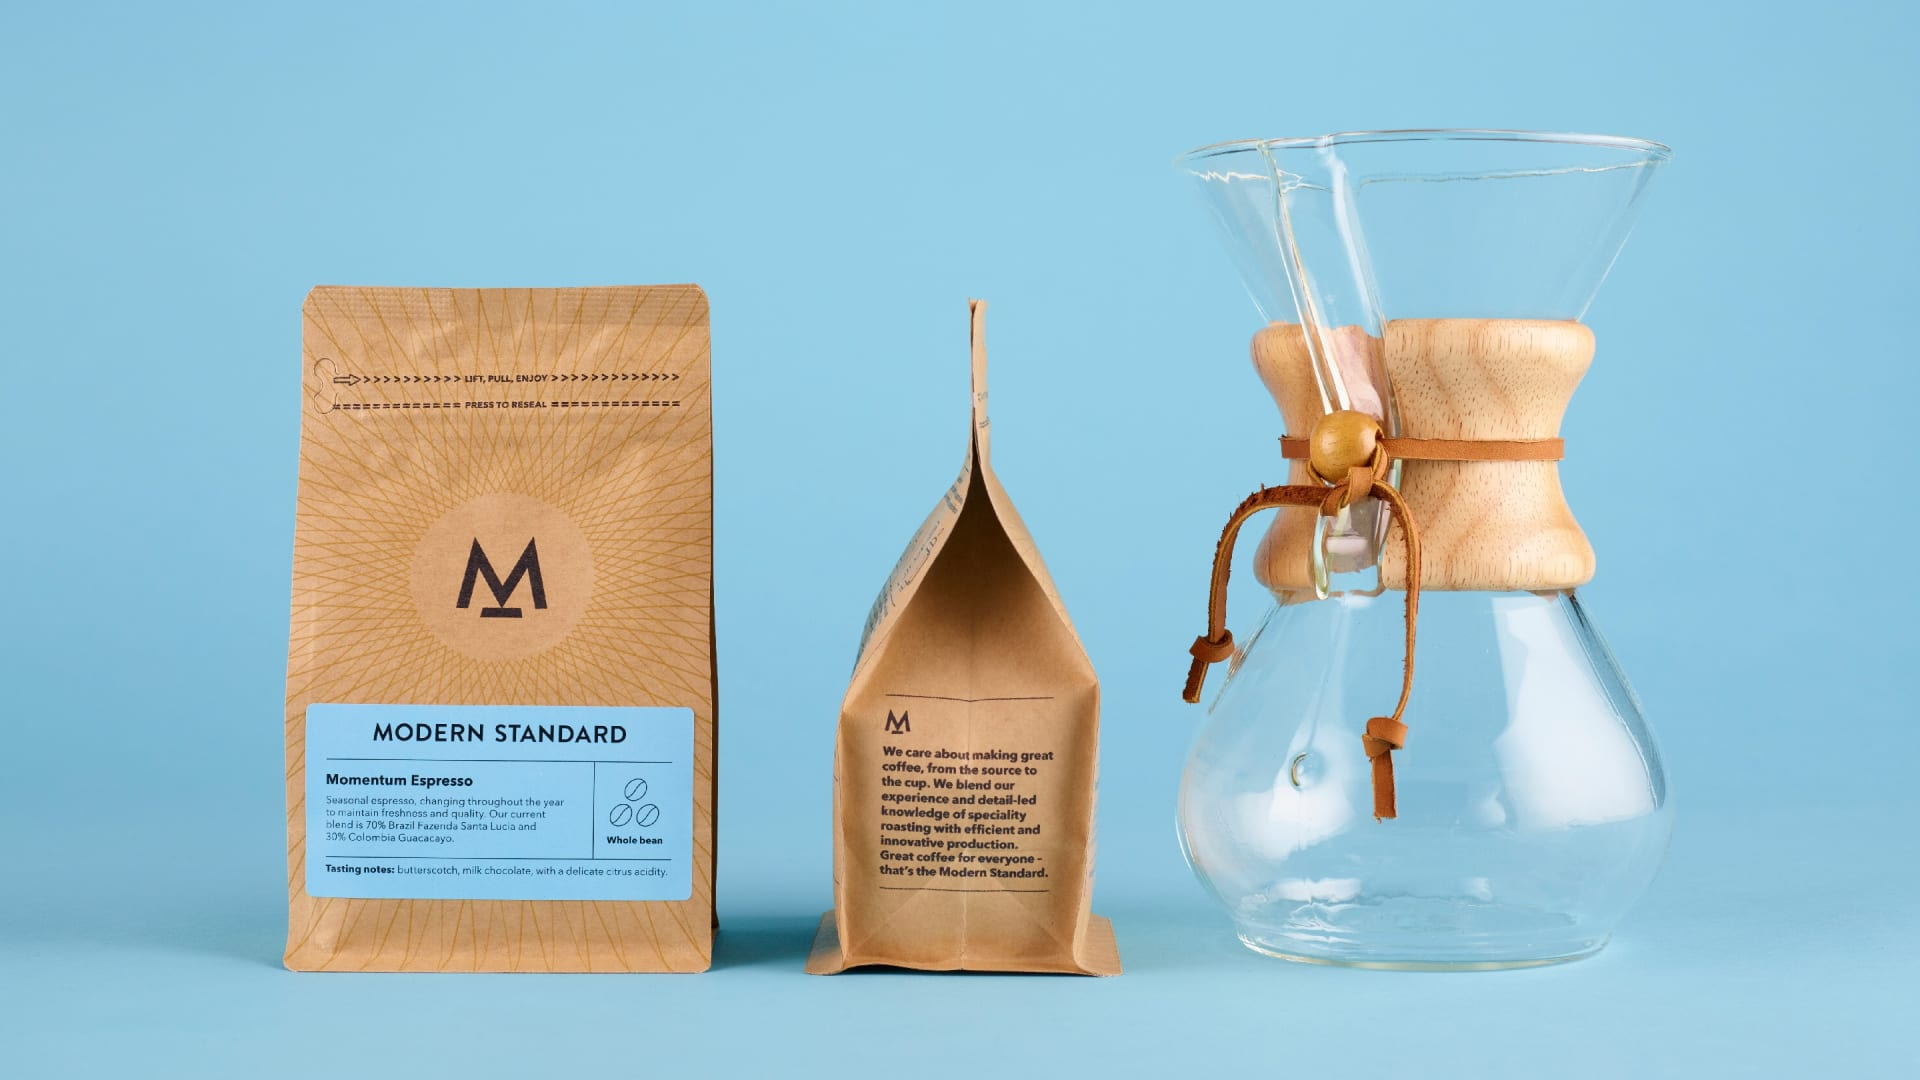 Modern Standard coffee brand packaging and story